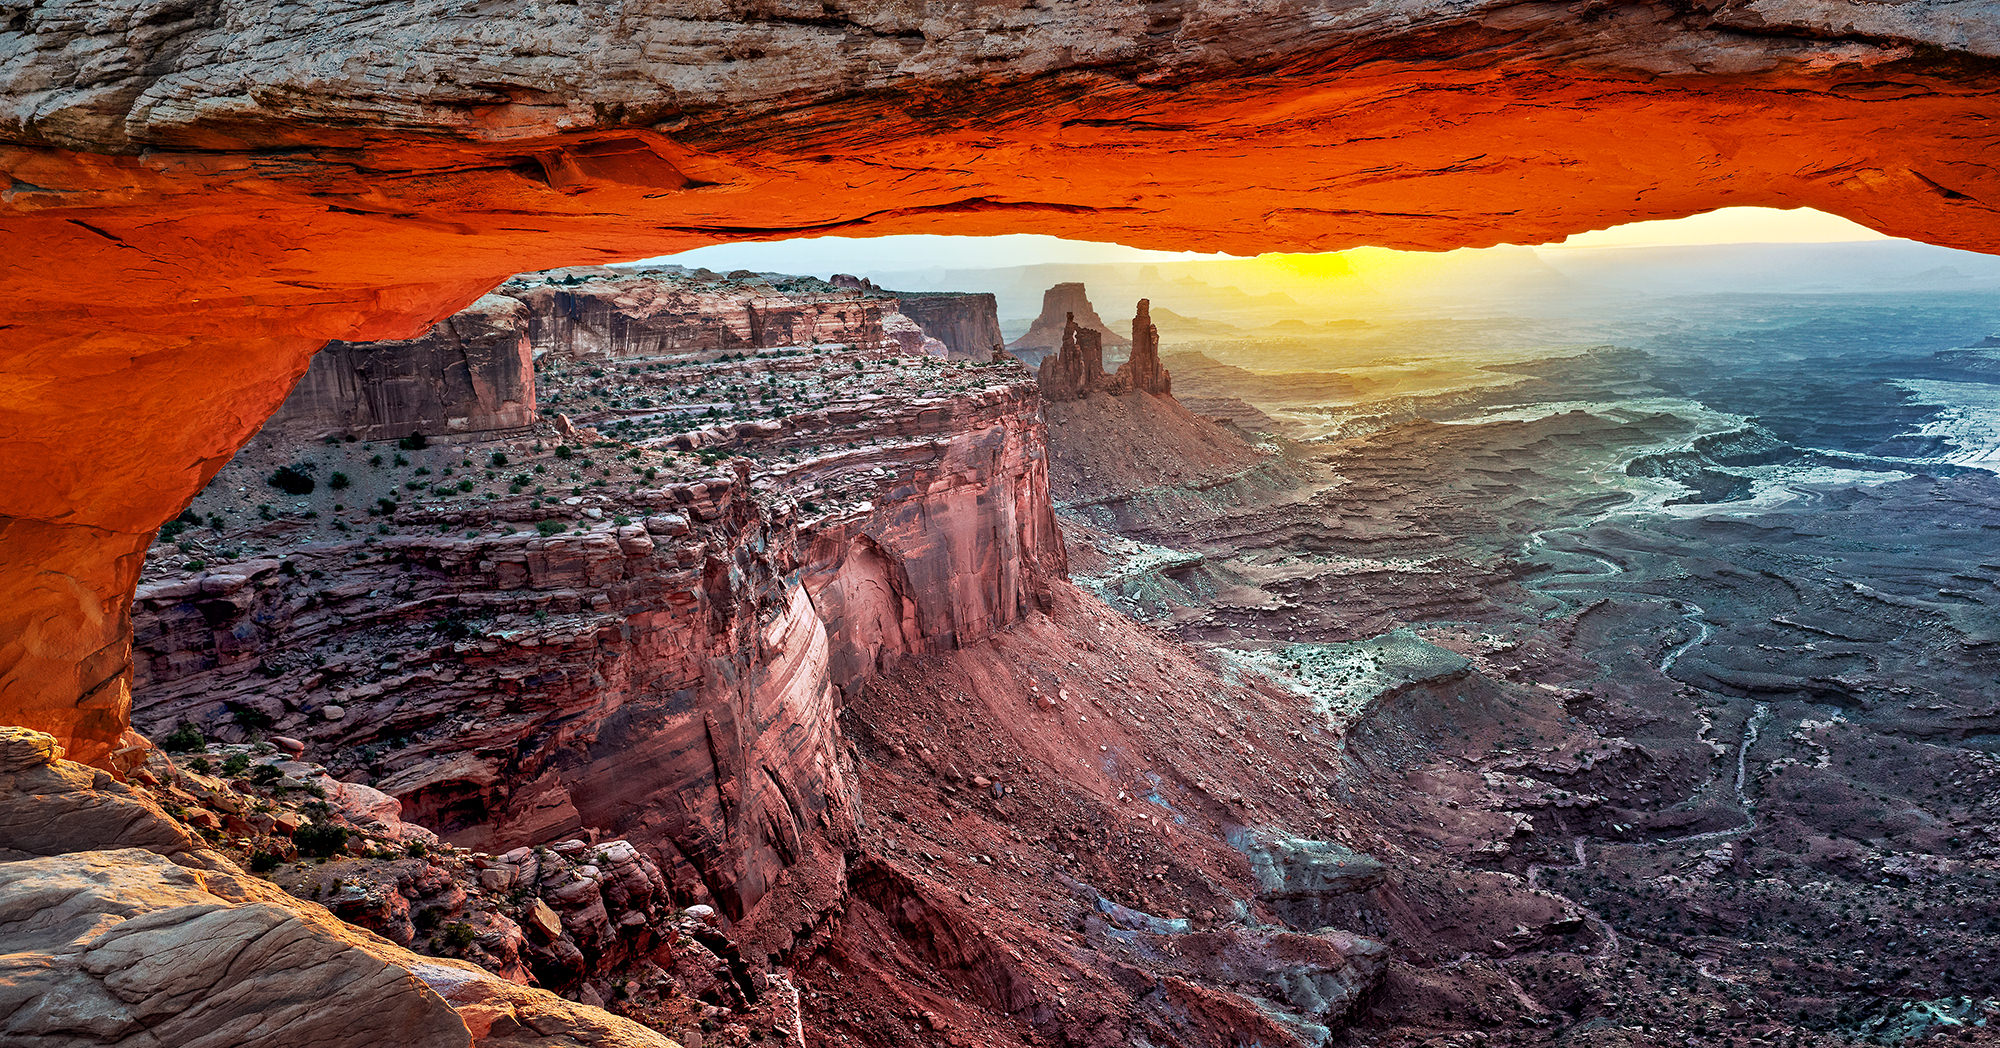 Mesa arch - Canyonlands National Park, UT